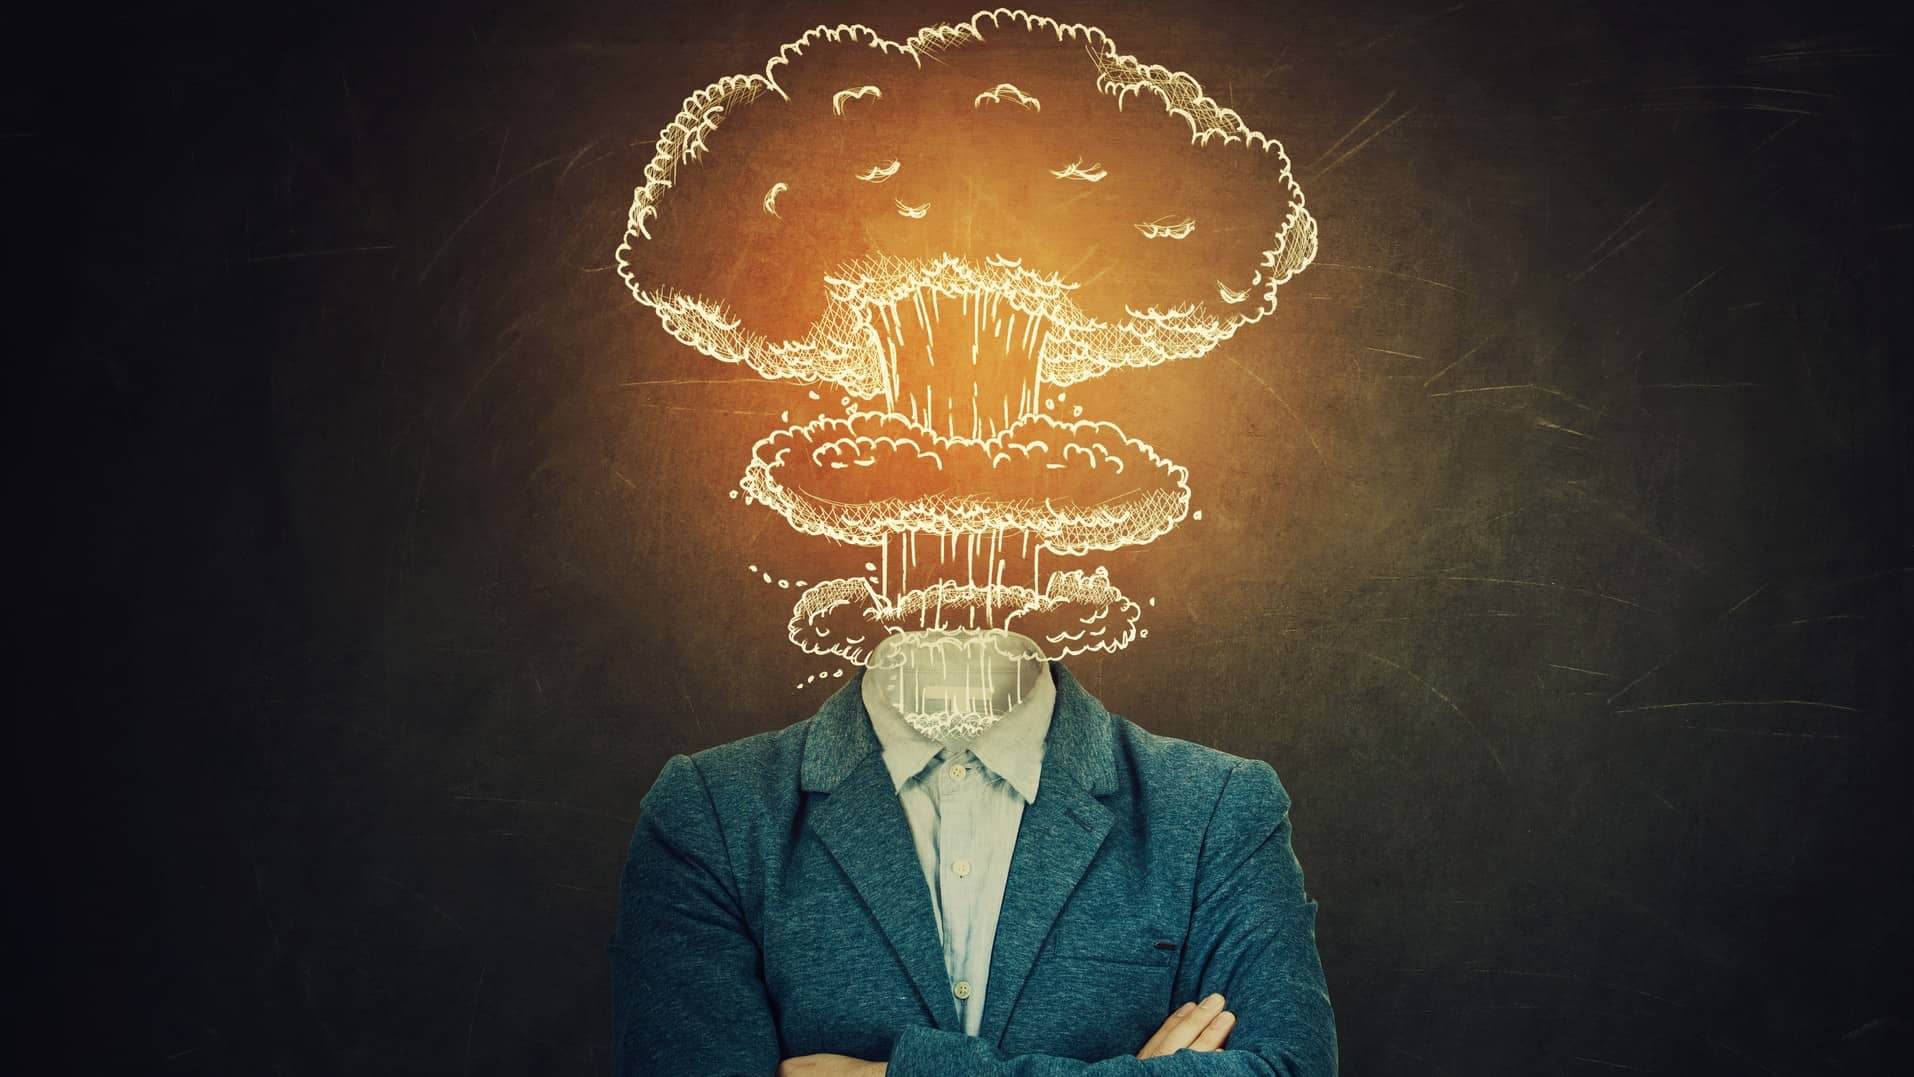 stylised image of exploding cloud coming out of neck of man's suit representing exploding Brainchip share price